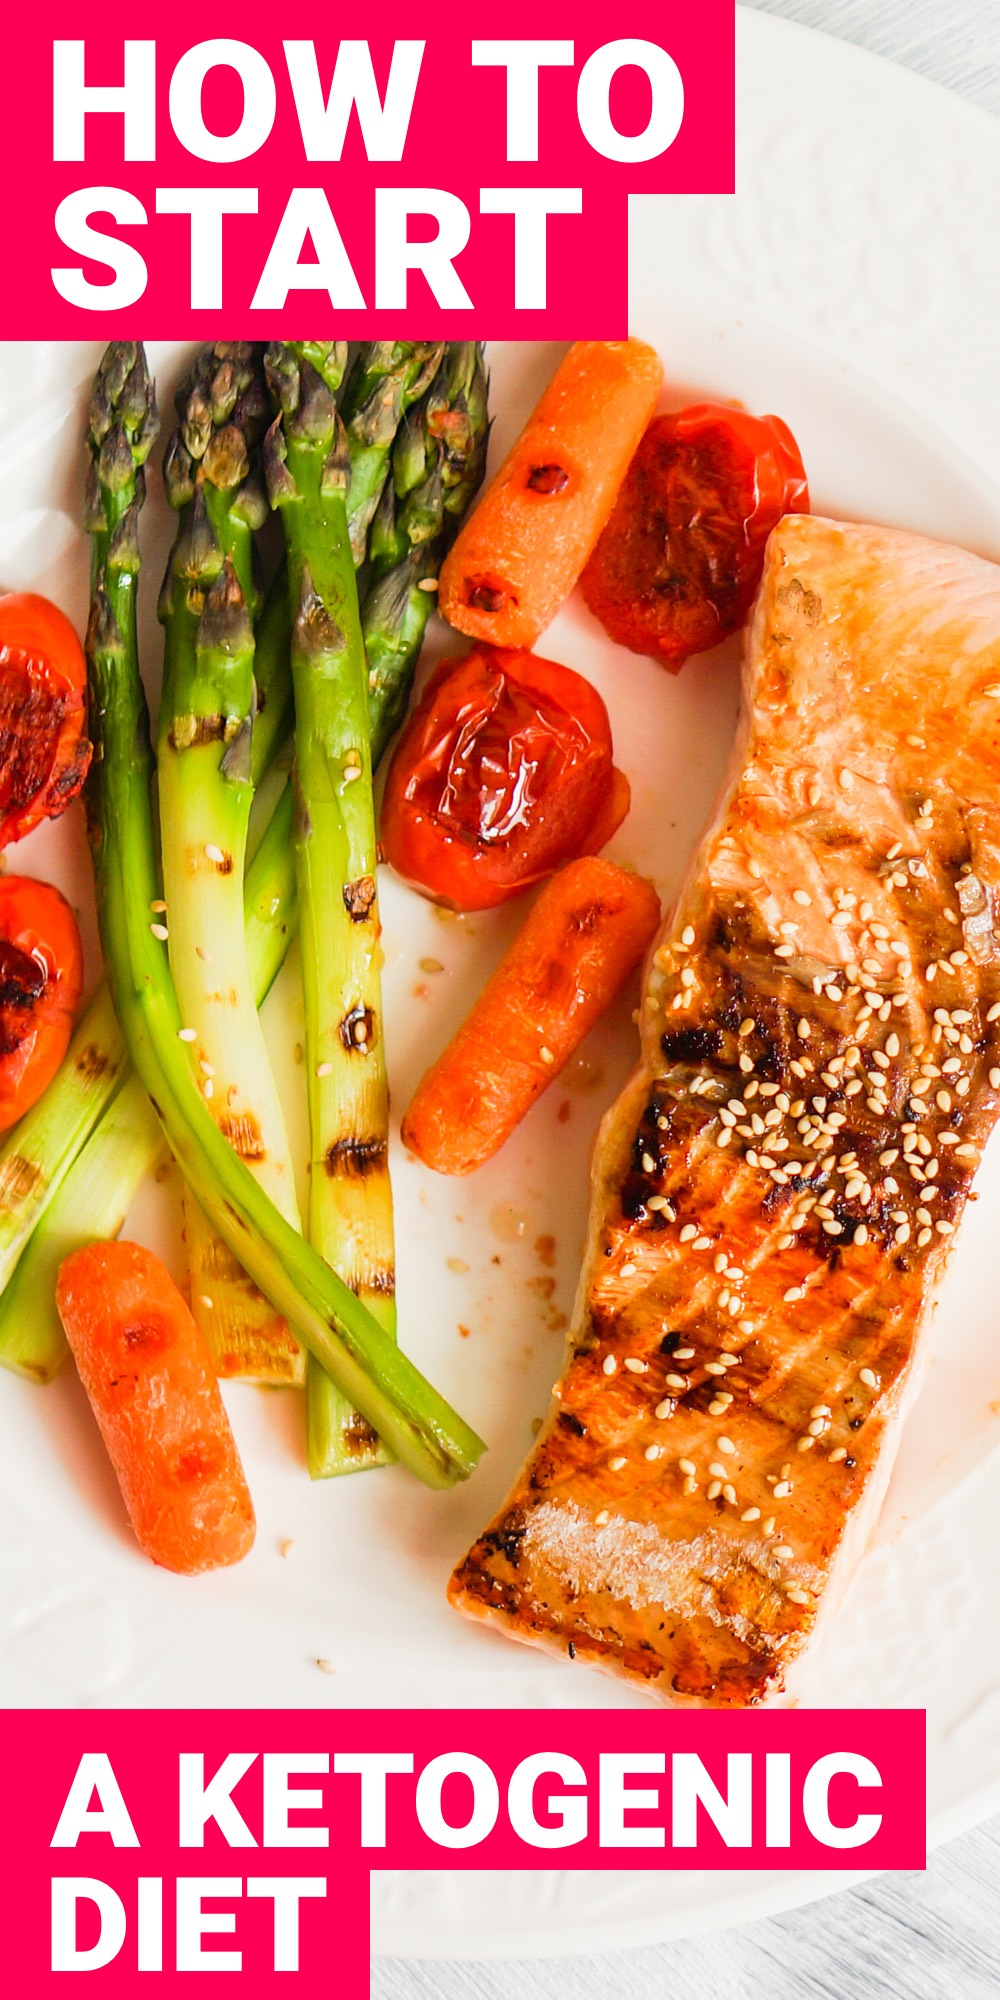 When you start a ketogenic diet, you need to know how to start it off right. Here is how to start a keto diet to successfully lose weight.